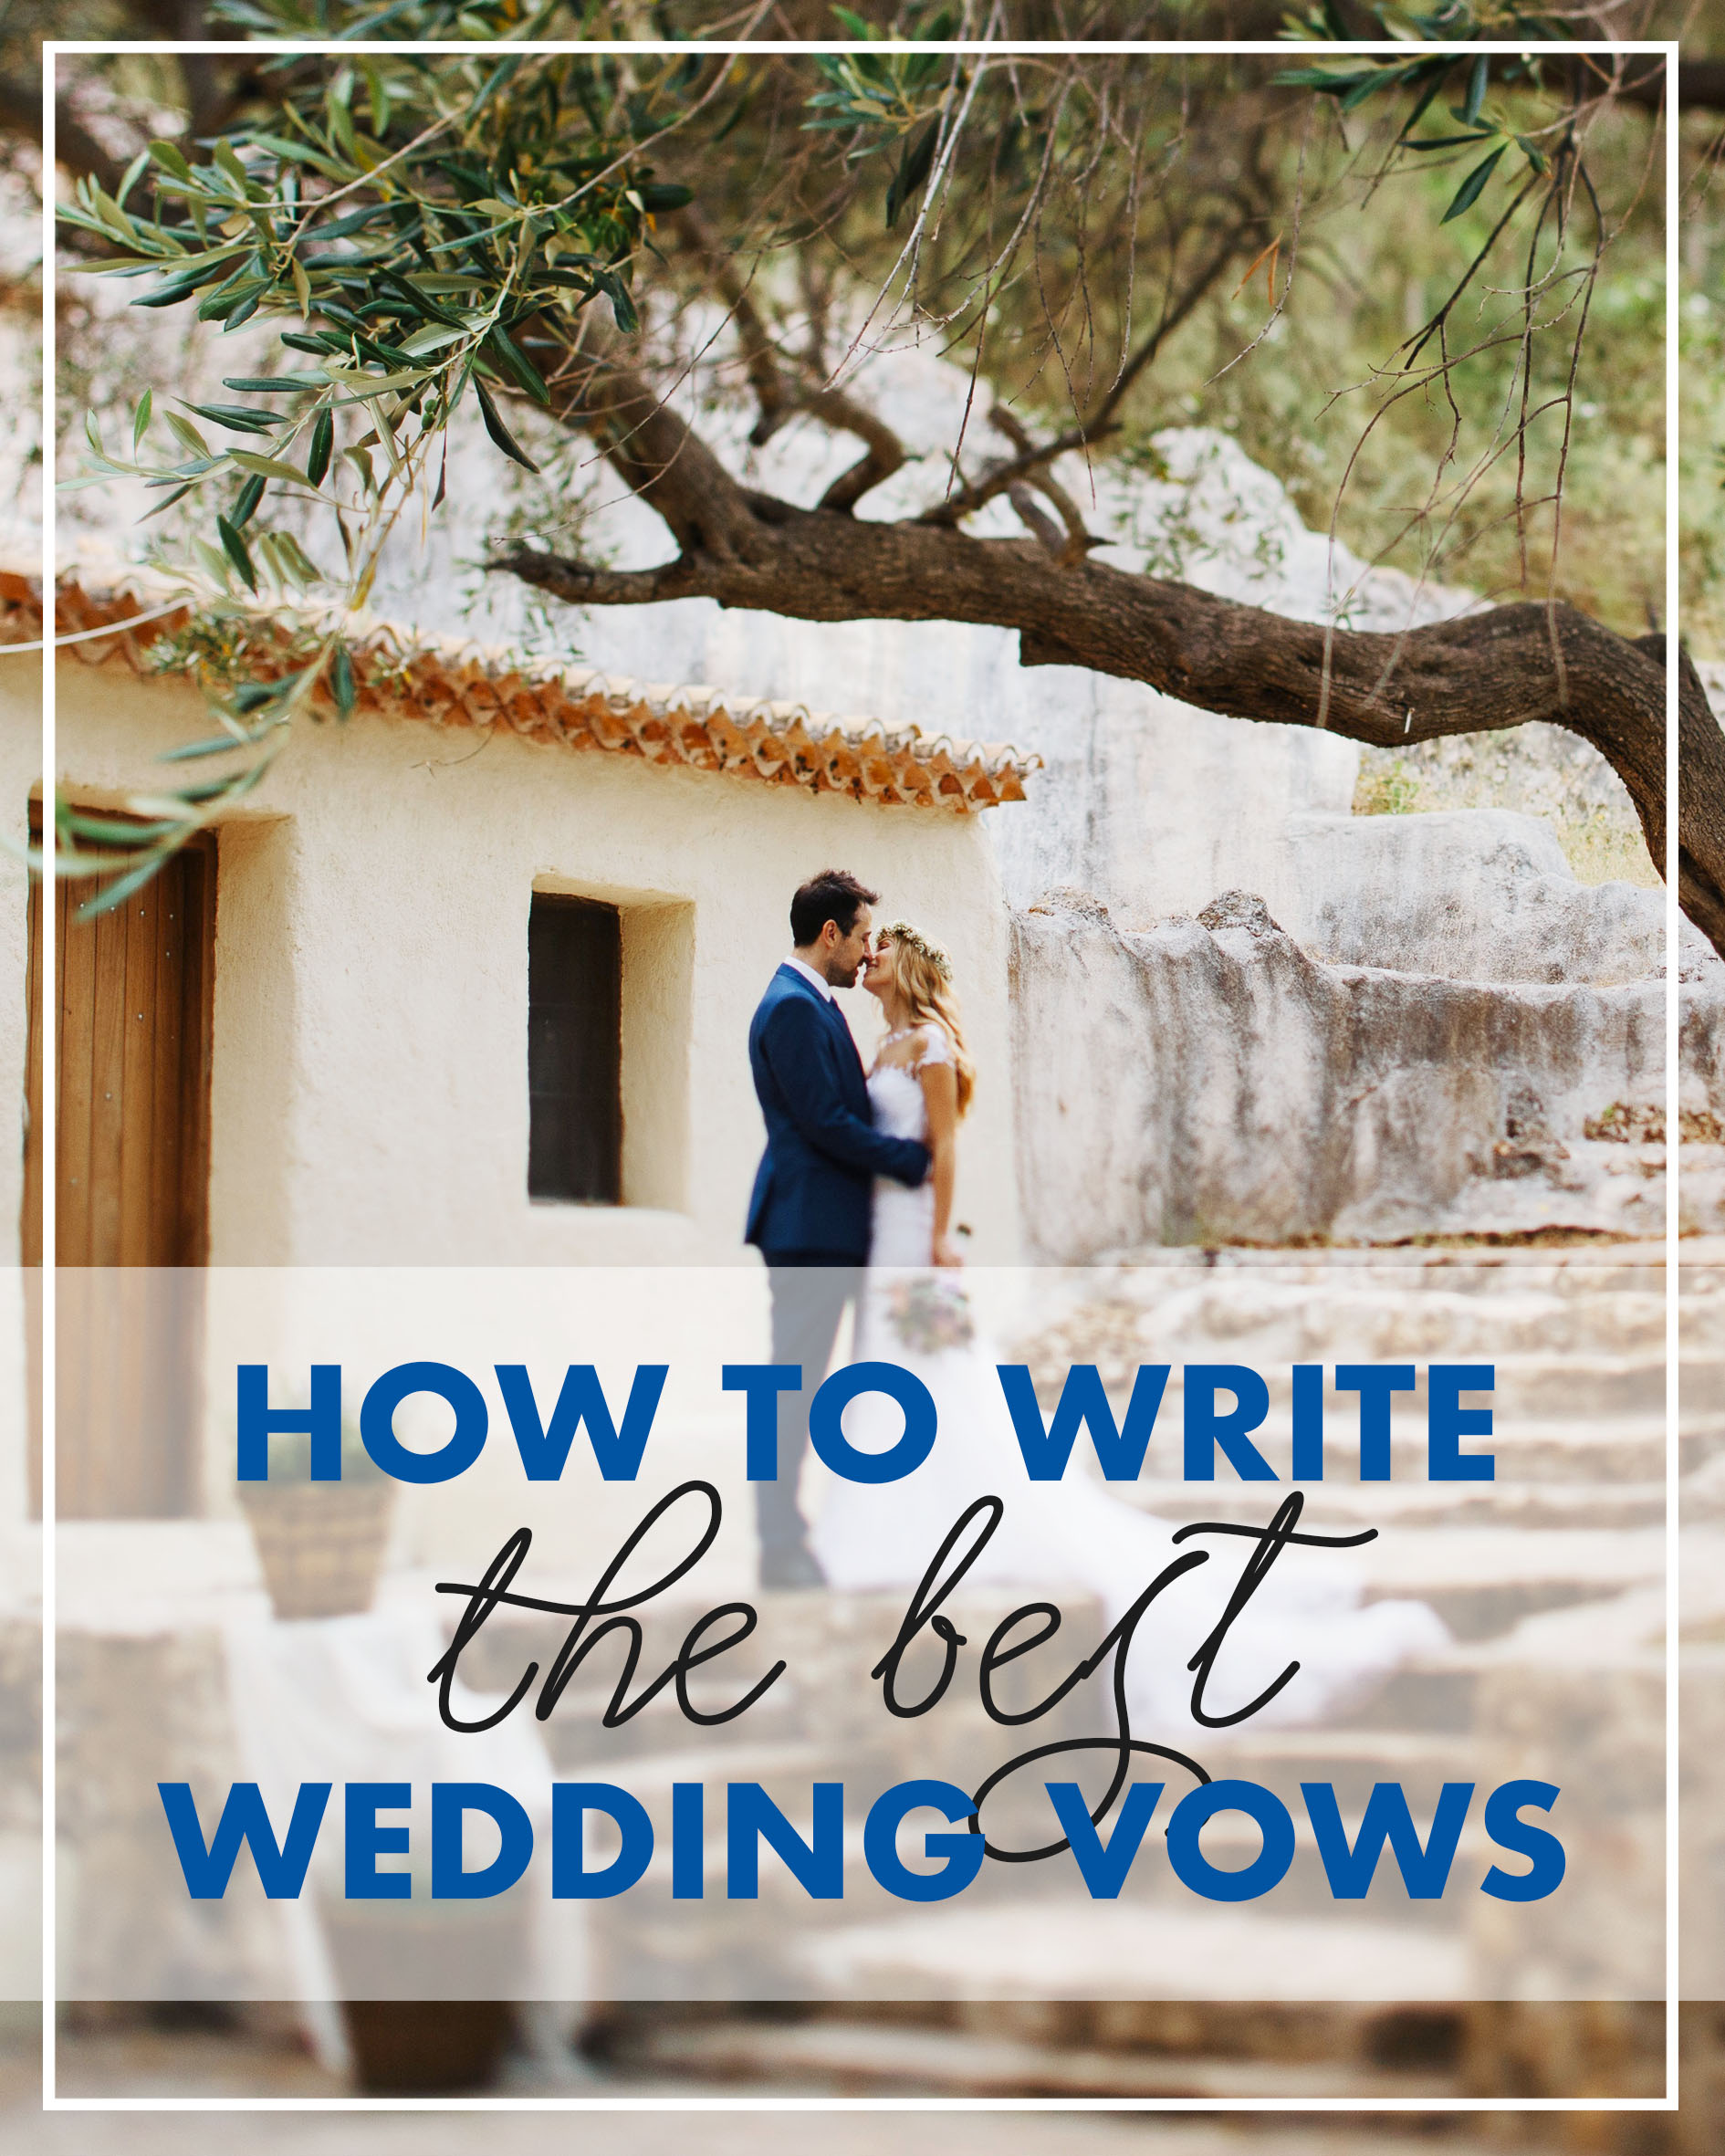 Ideas For A Small Wedding Ceremony: How To Write The Best Wedding Vows